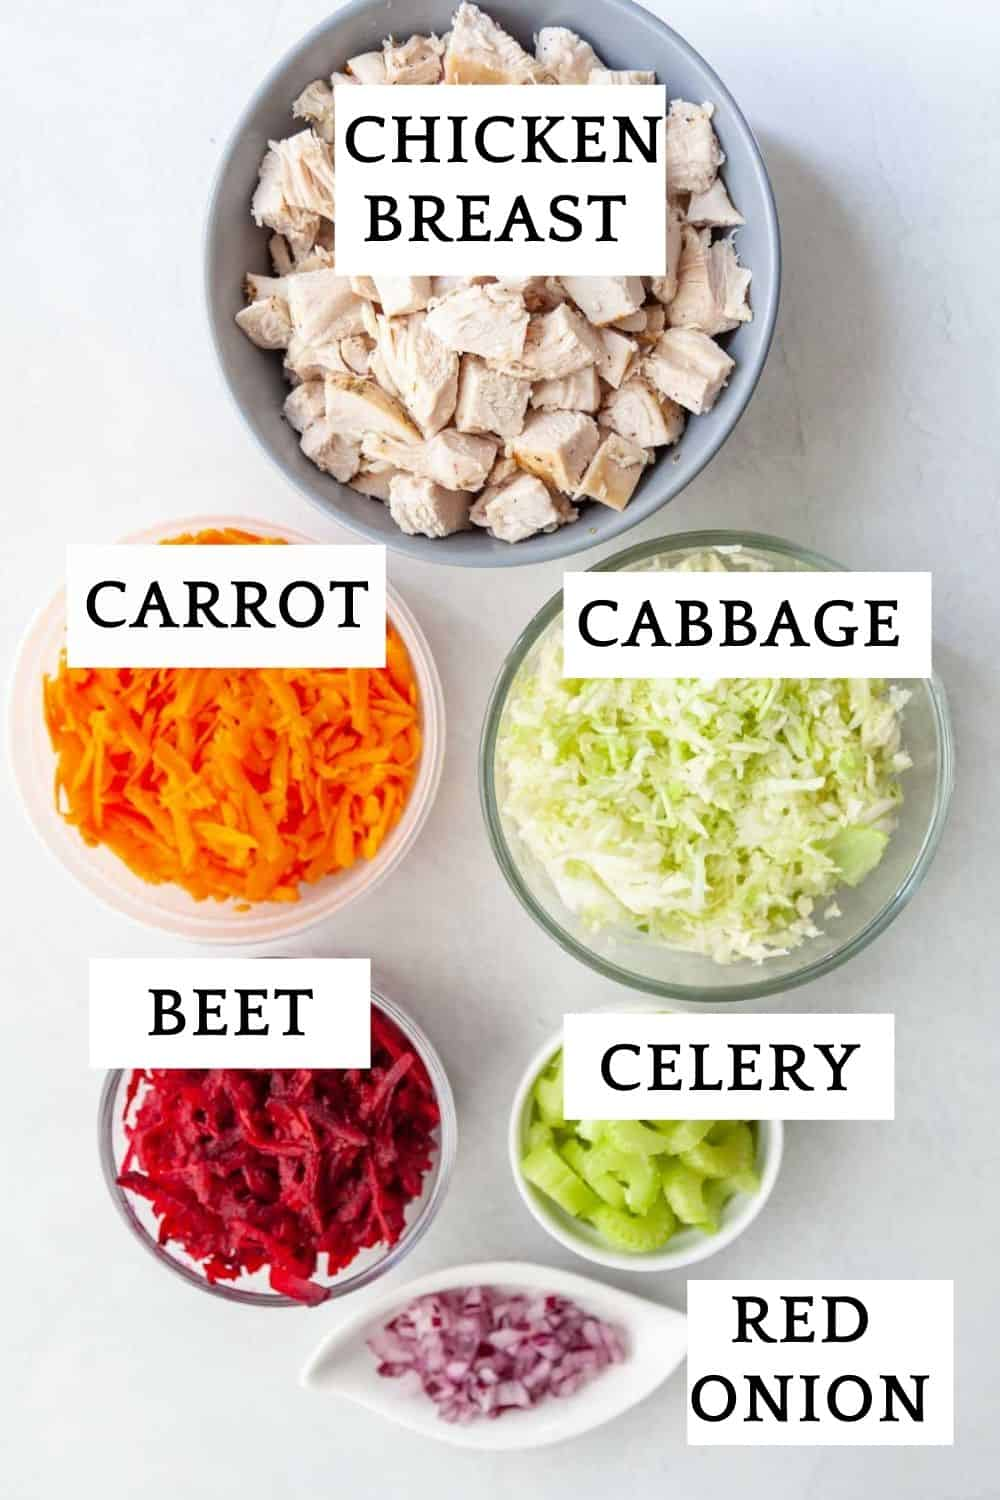 ingredients for veggie chicken salad: chopped chicken breast, cabbage, carrots, beet, red onion